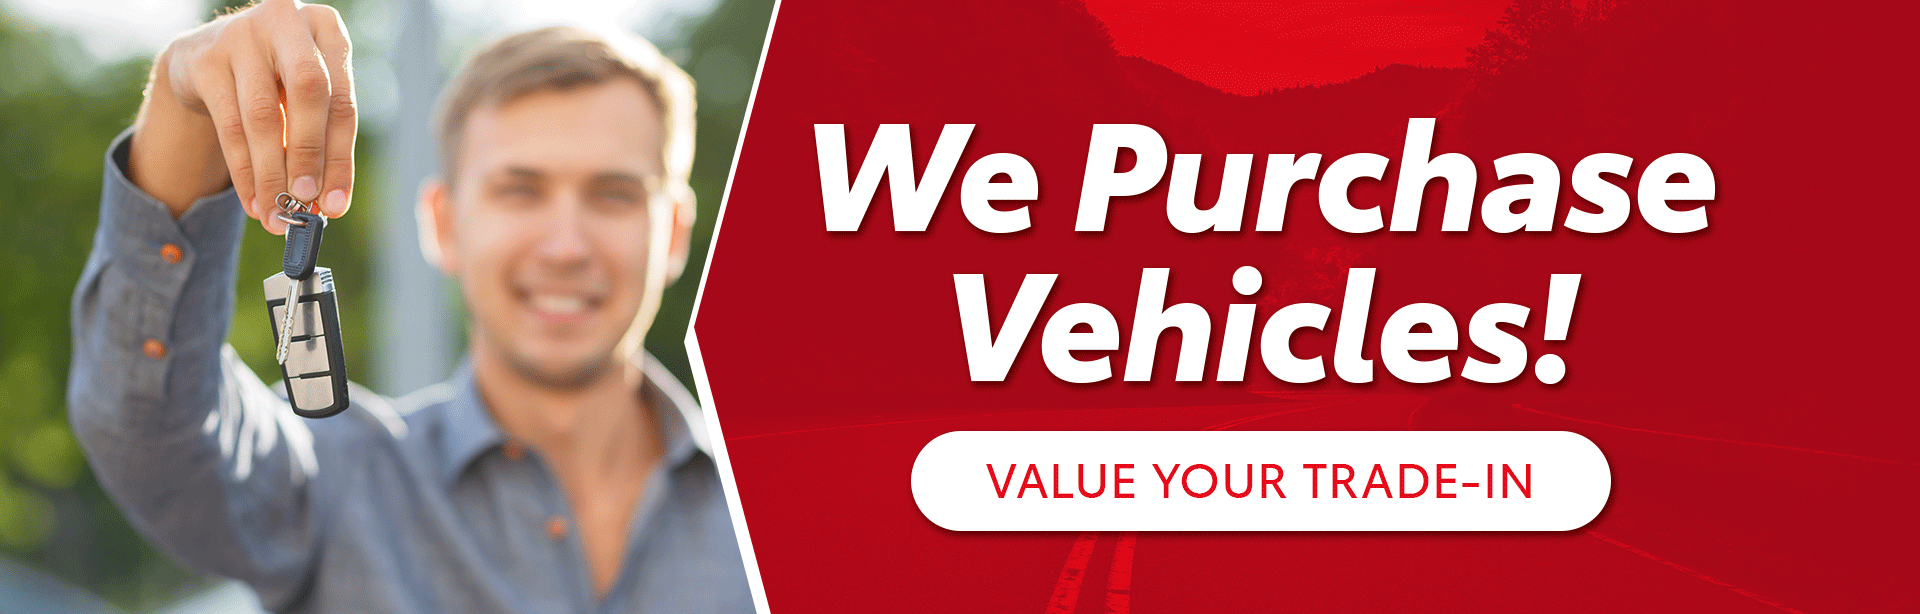 We Purchase Vehicles